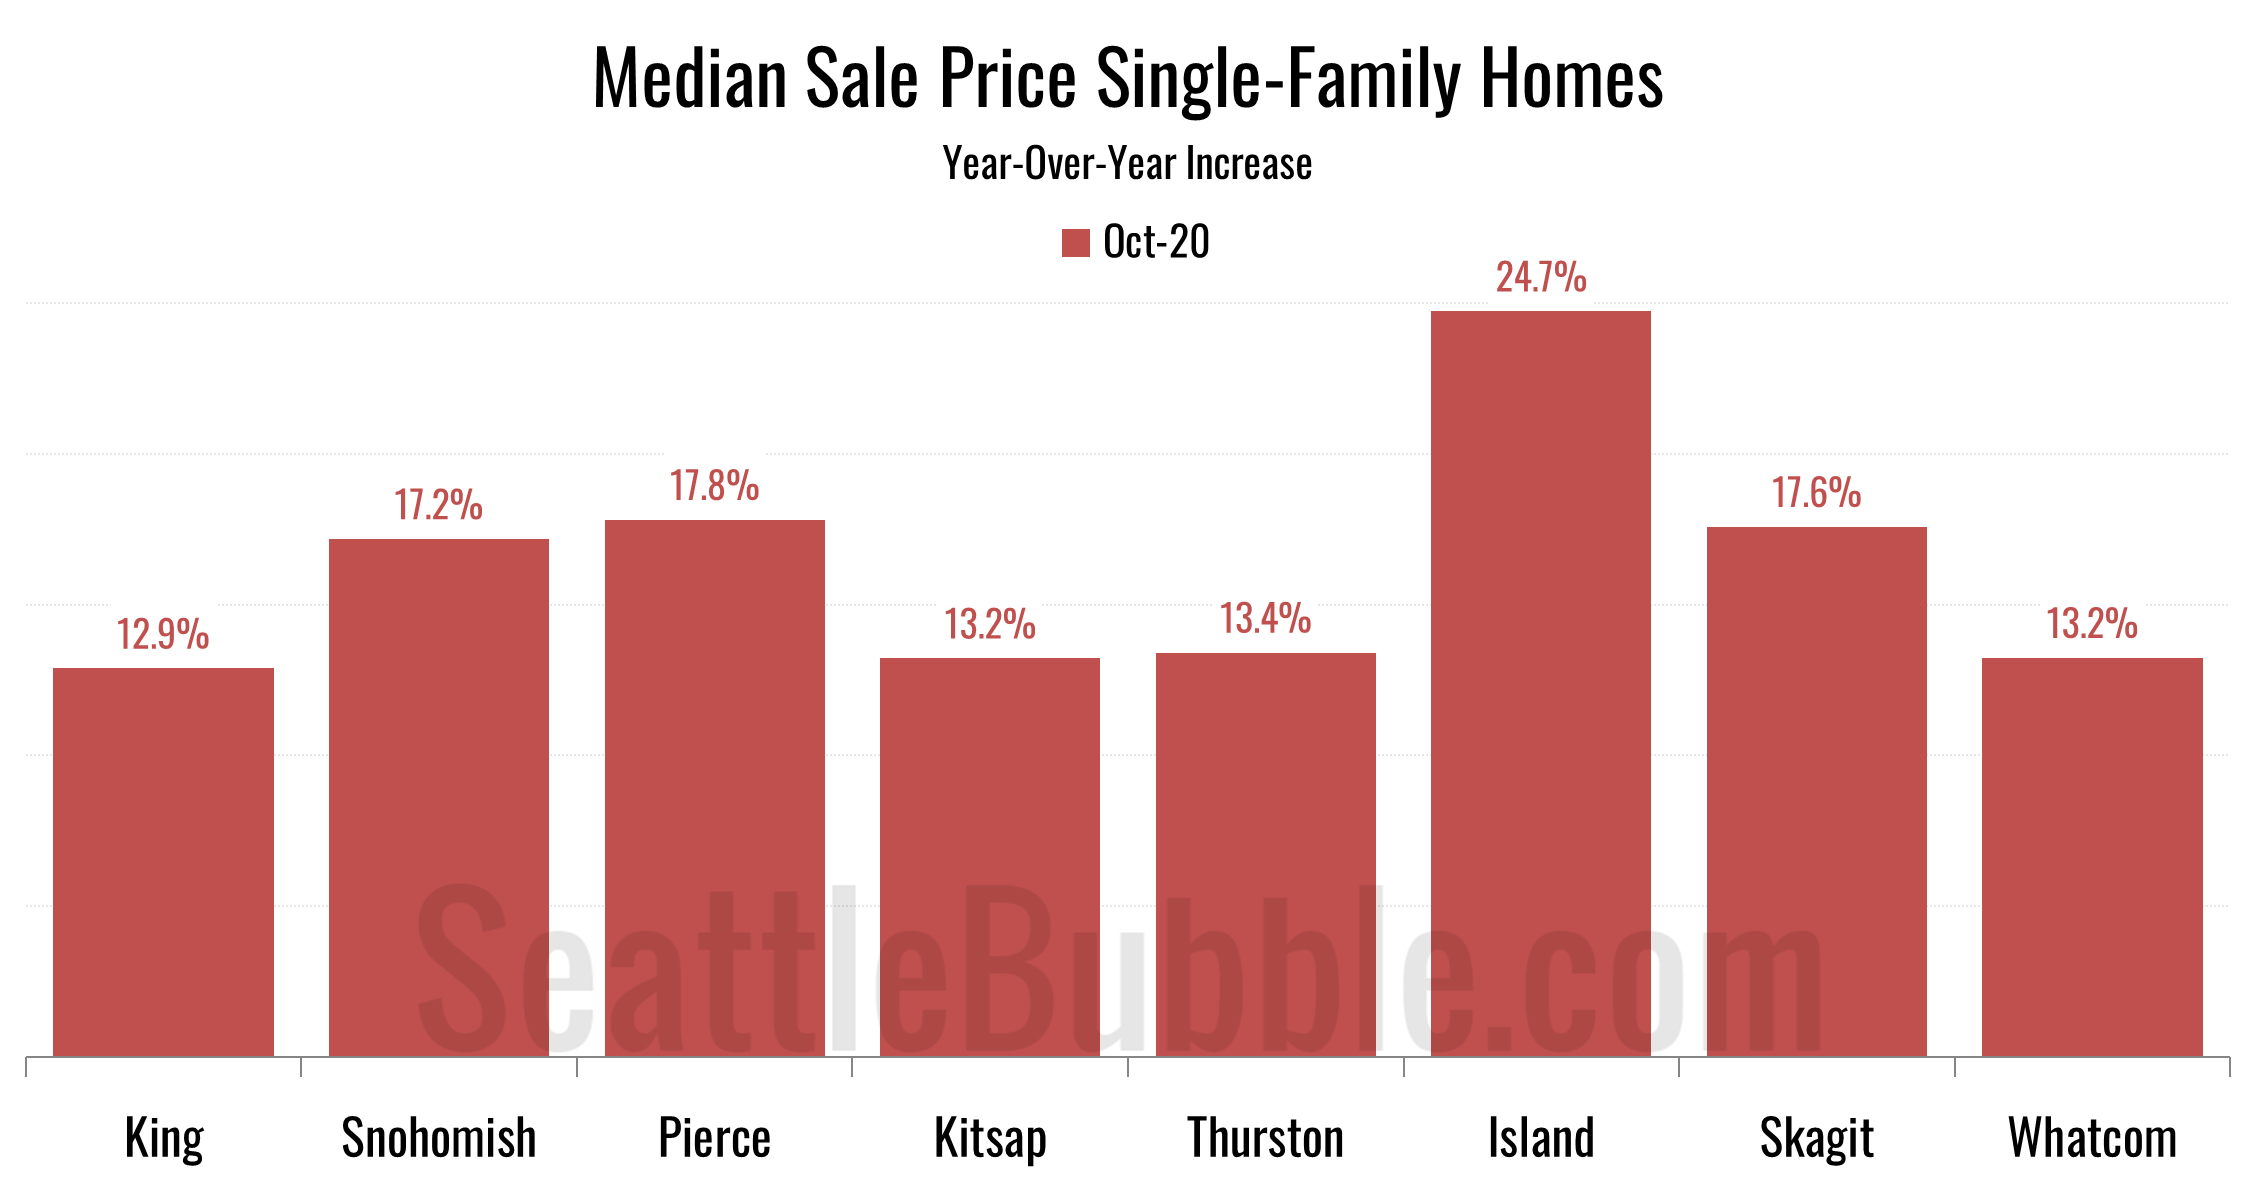 Year-Over-Year Change in Median Sale Price Single-Family Homes